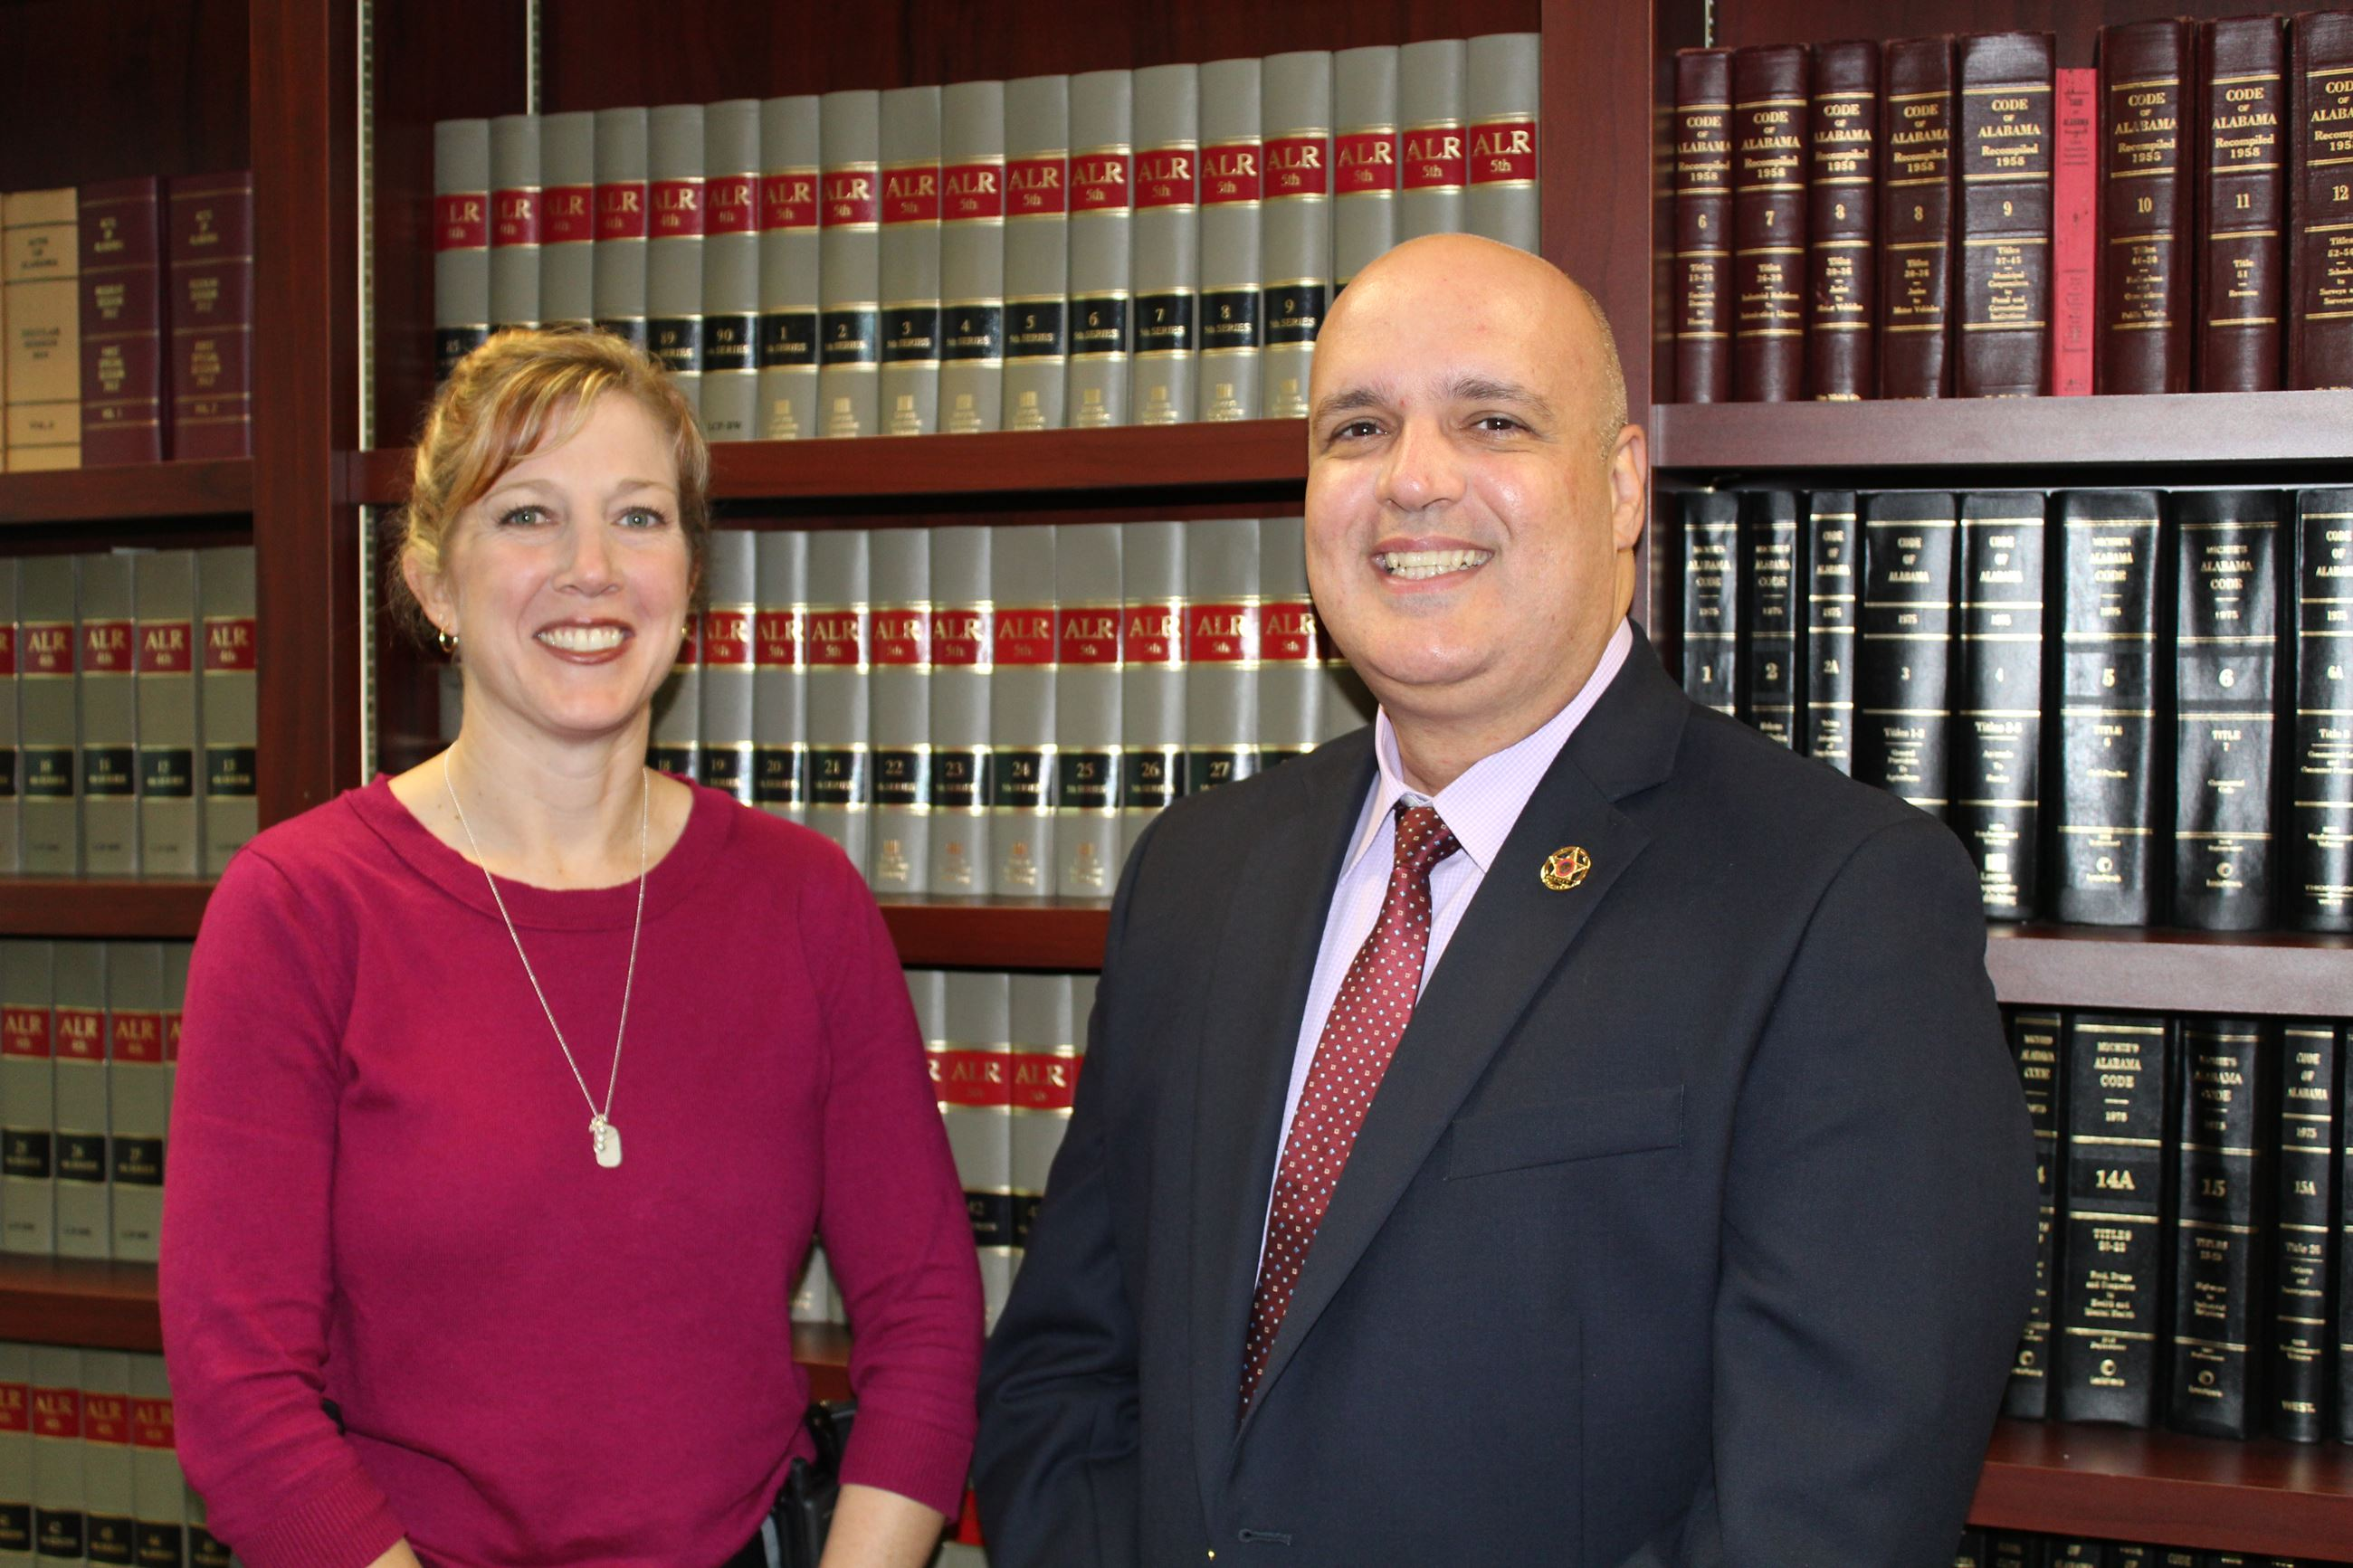 Investigators Heather Parramore and Roberto Rodriguez